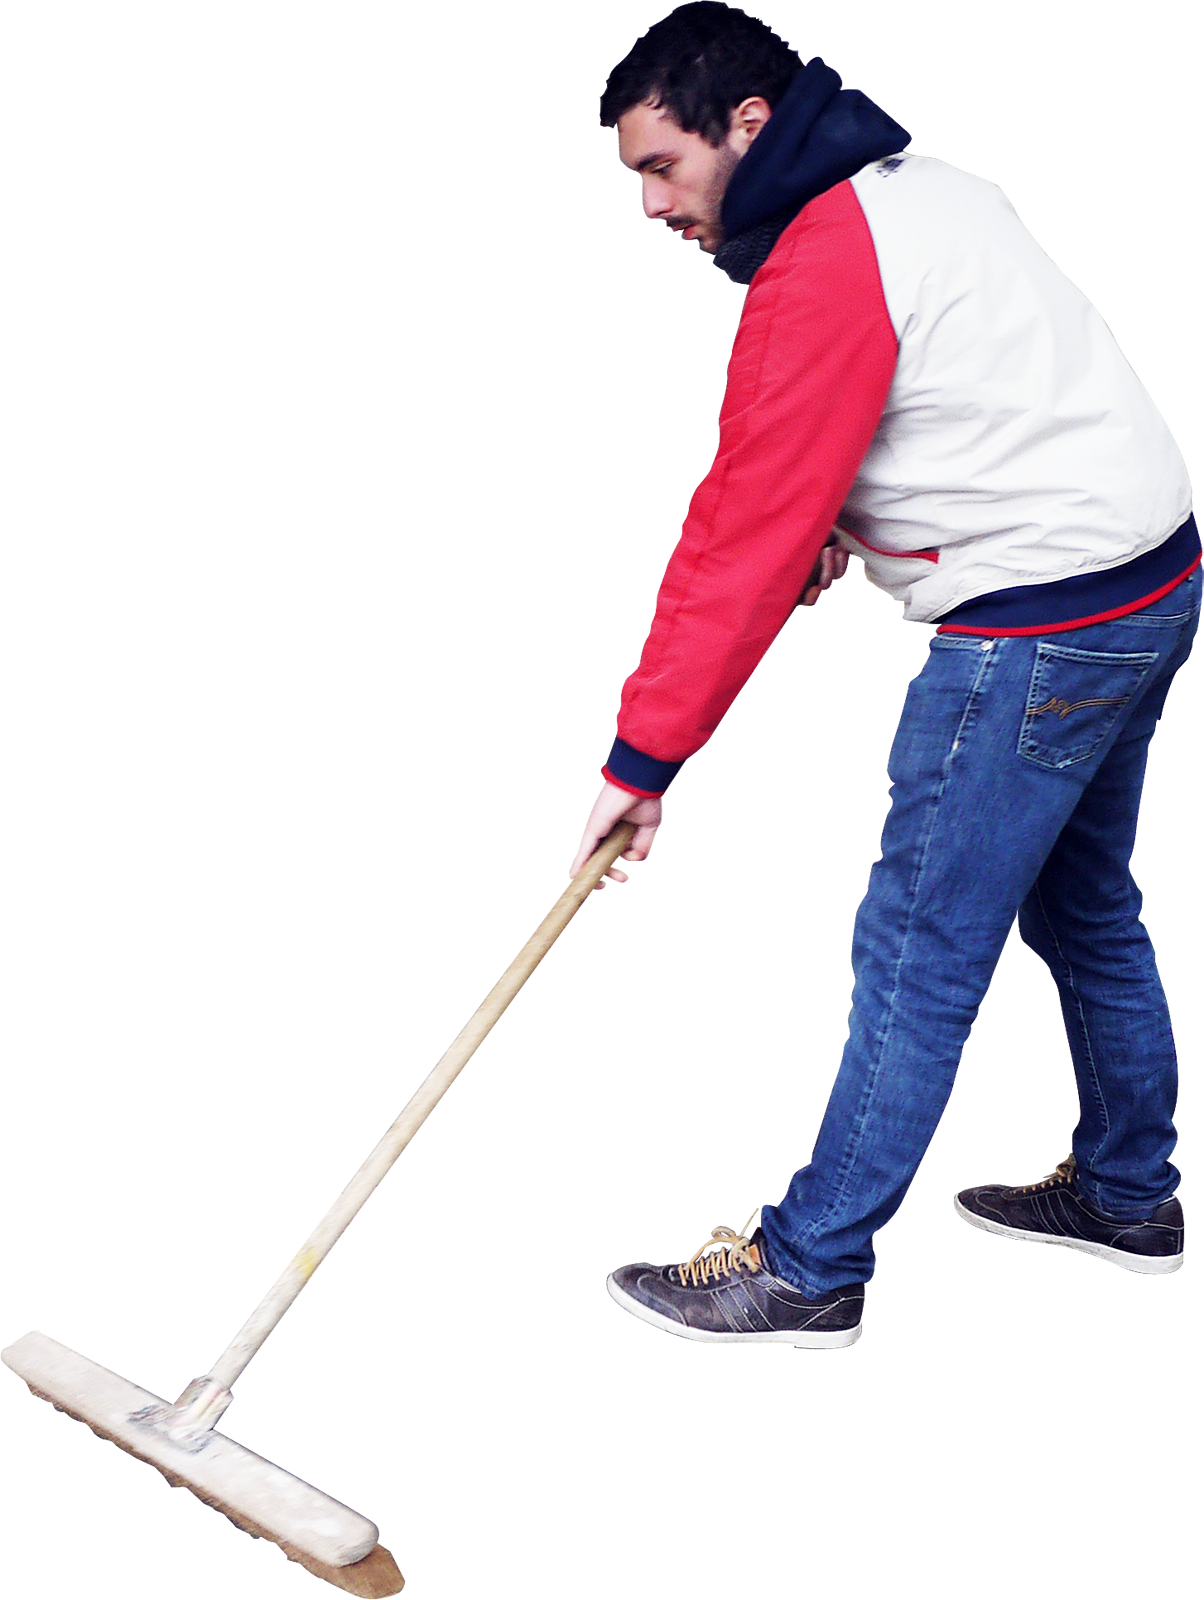 Clipart Sweeping Png Download